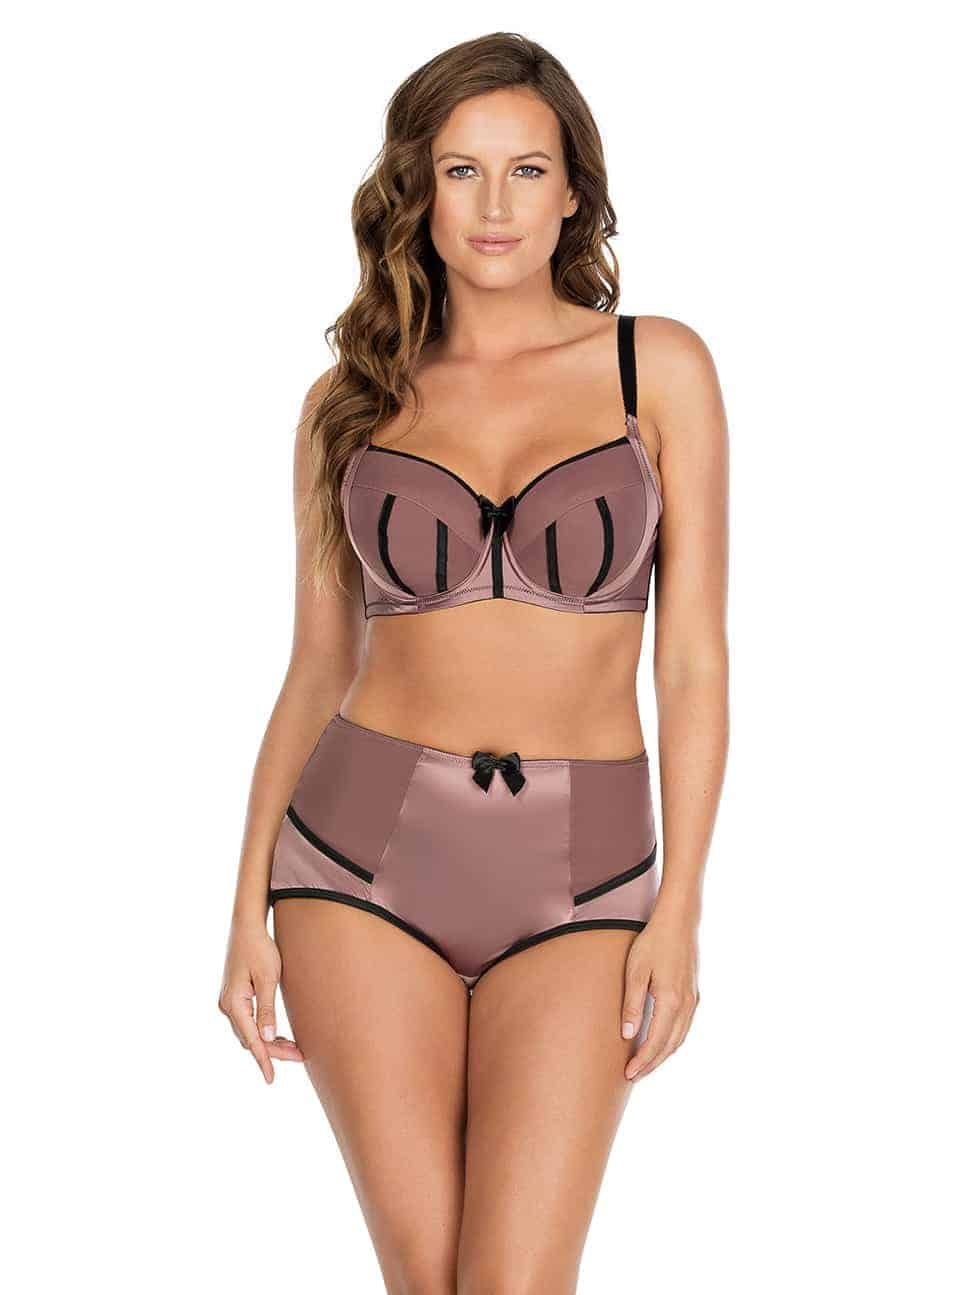 Charlotte PaddedBra6901 HighwaistBrief6917 Woodrose Front - Charlotte Highwaist Brief - Woodrose - 6917